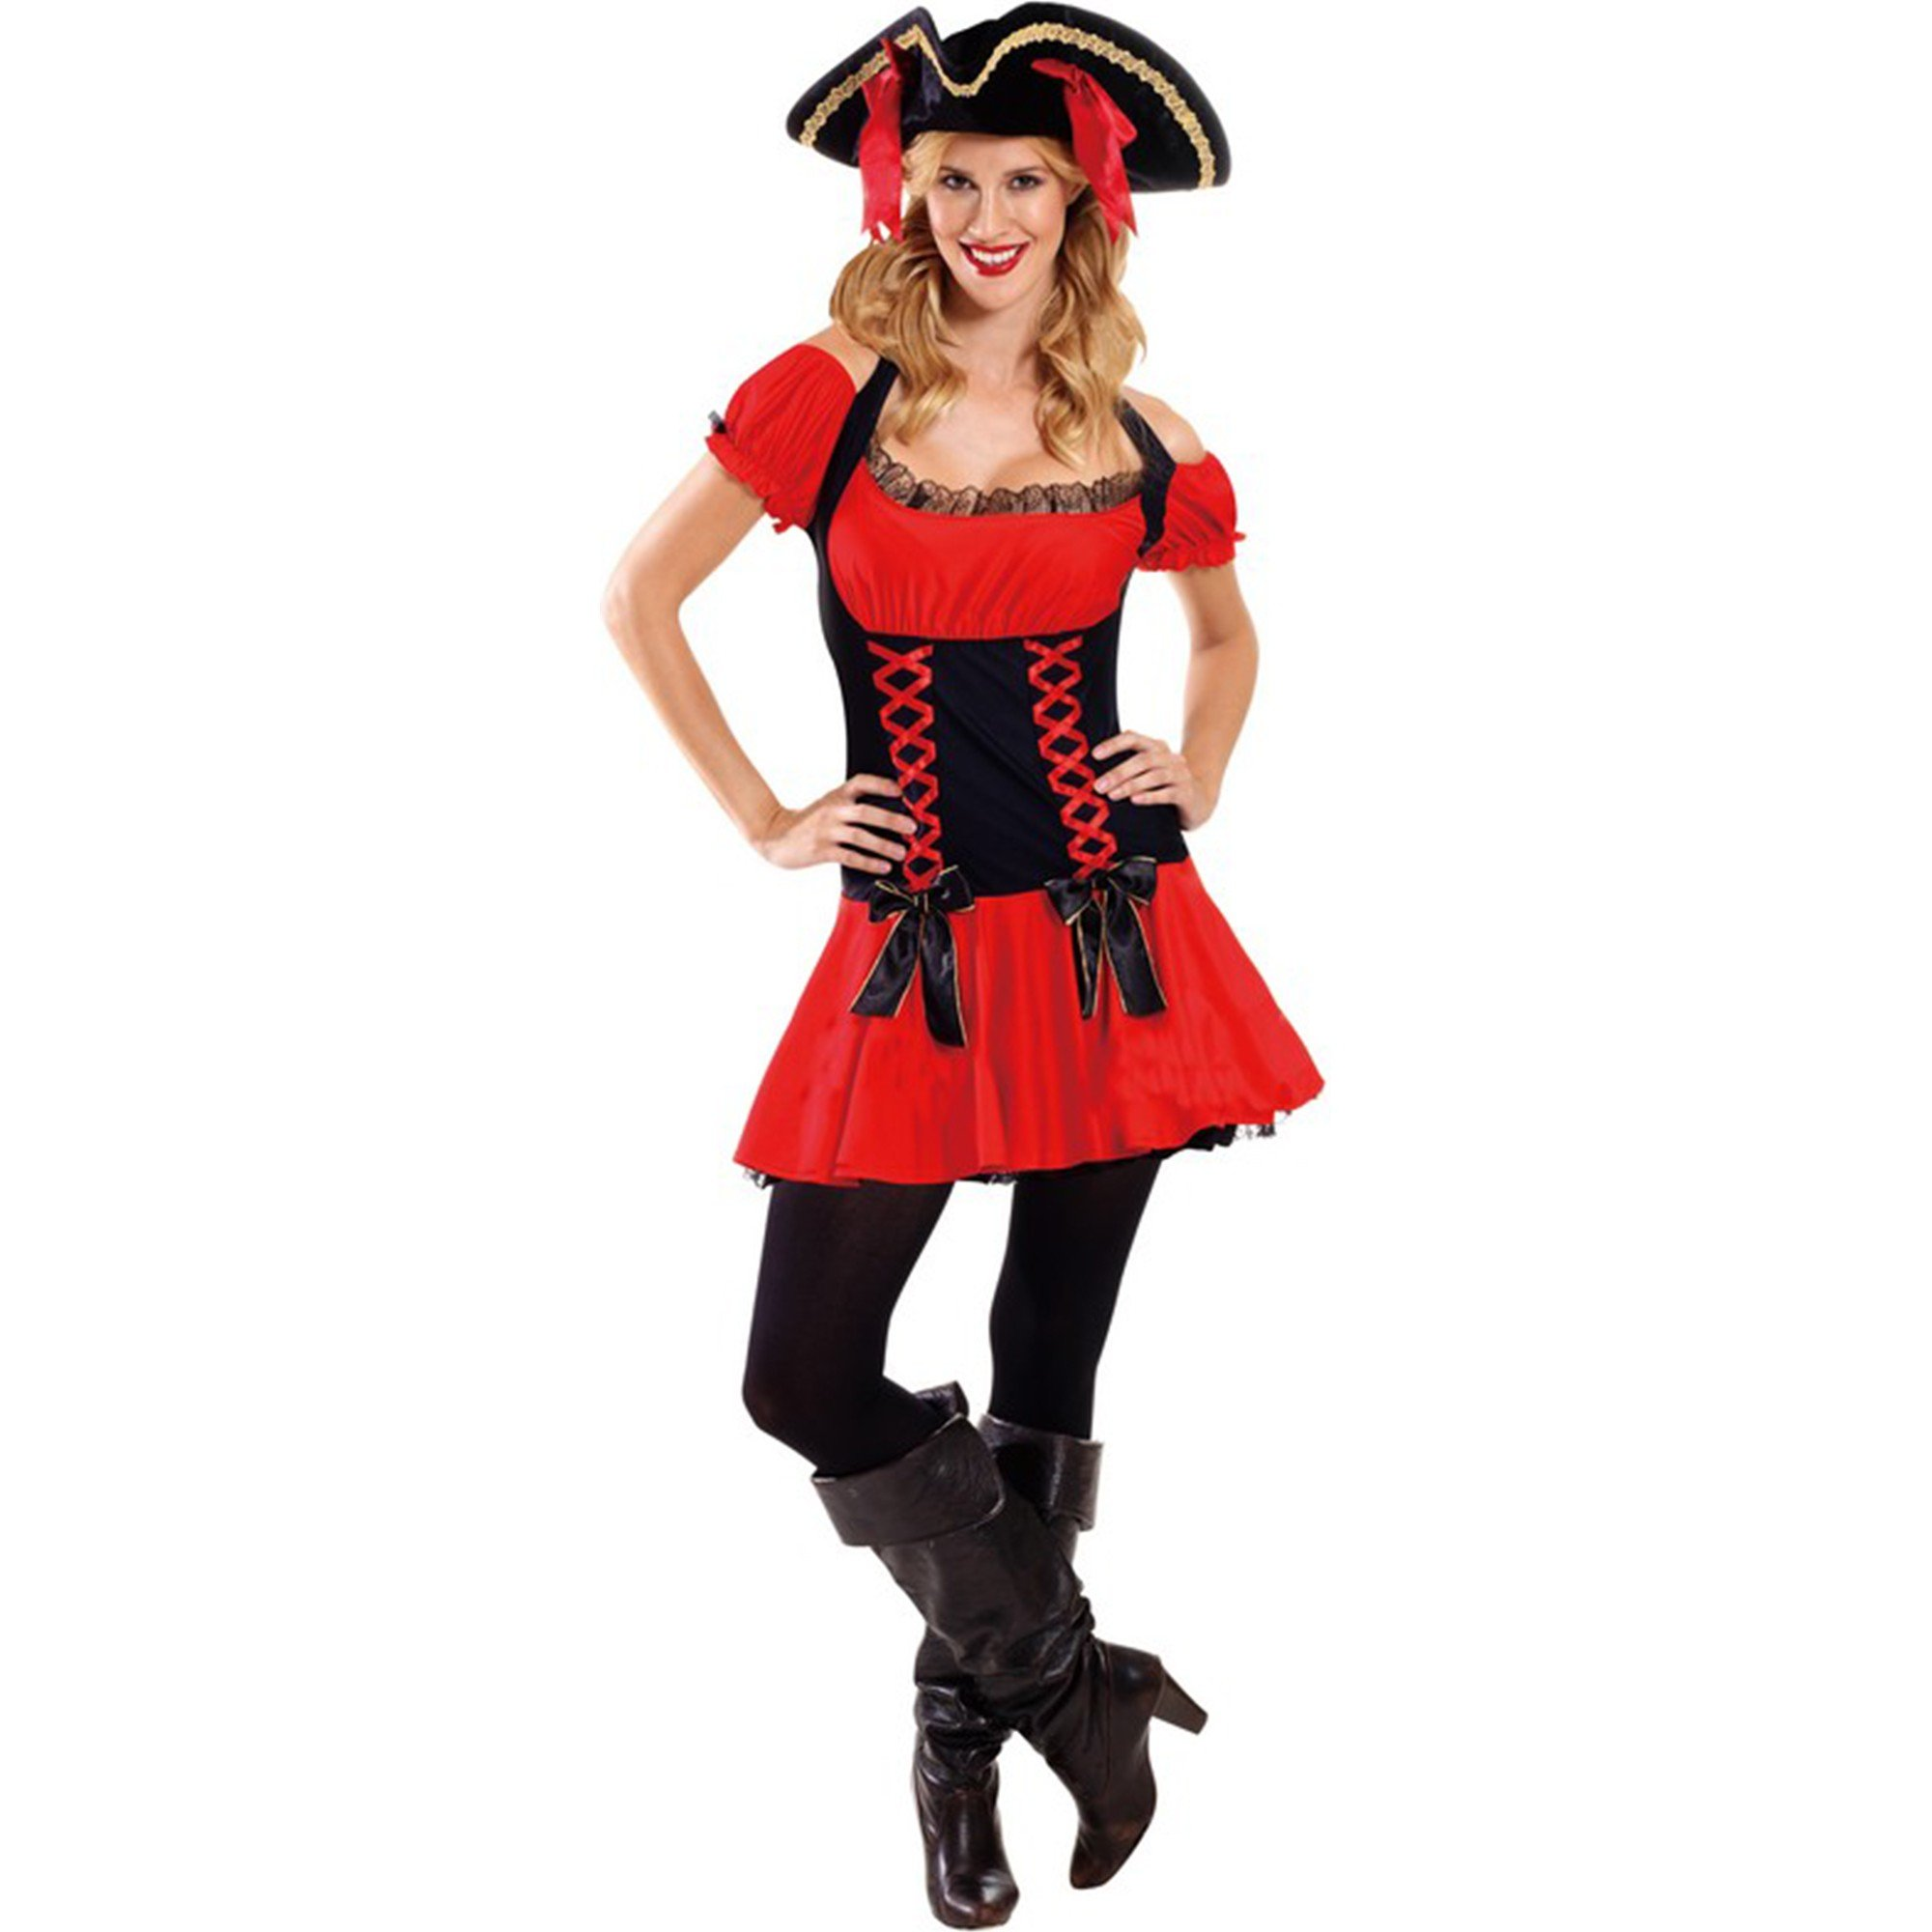 Deluxe Pirate Girl Costume Large - Adult